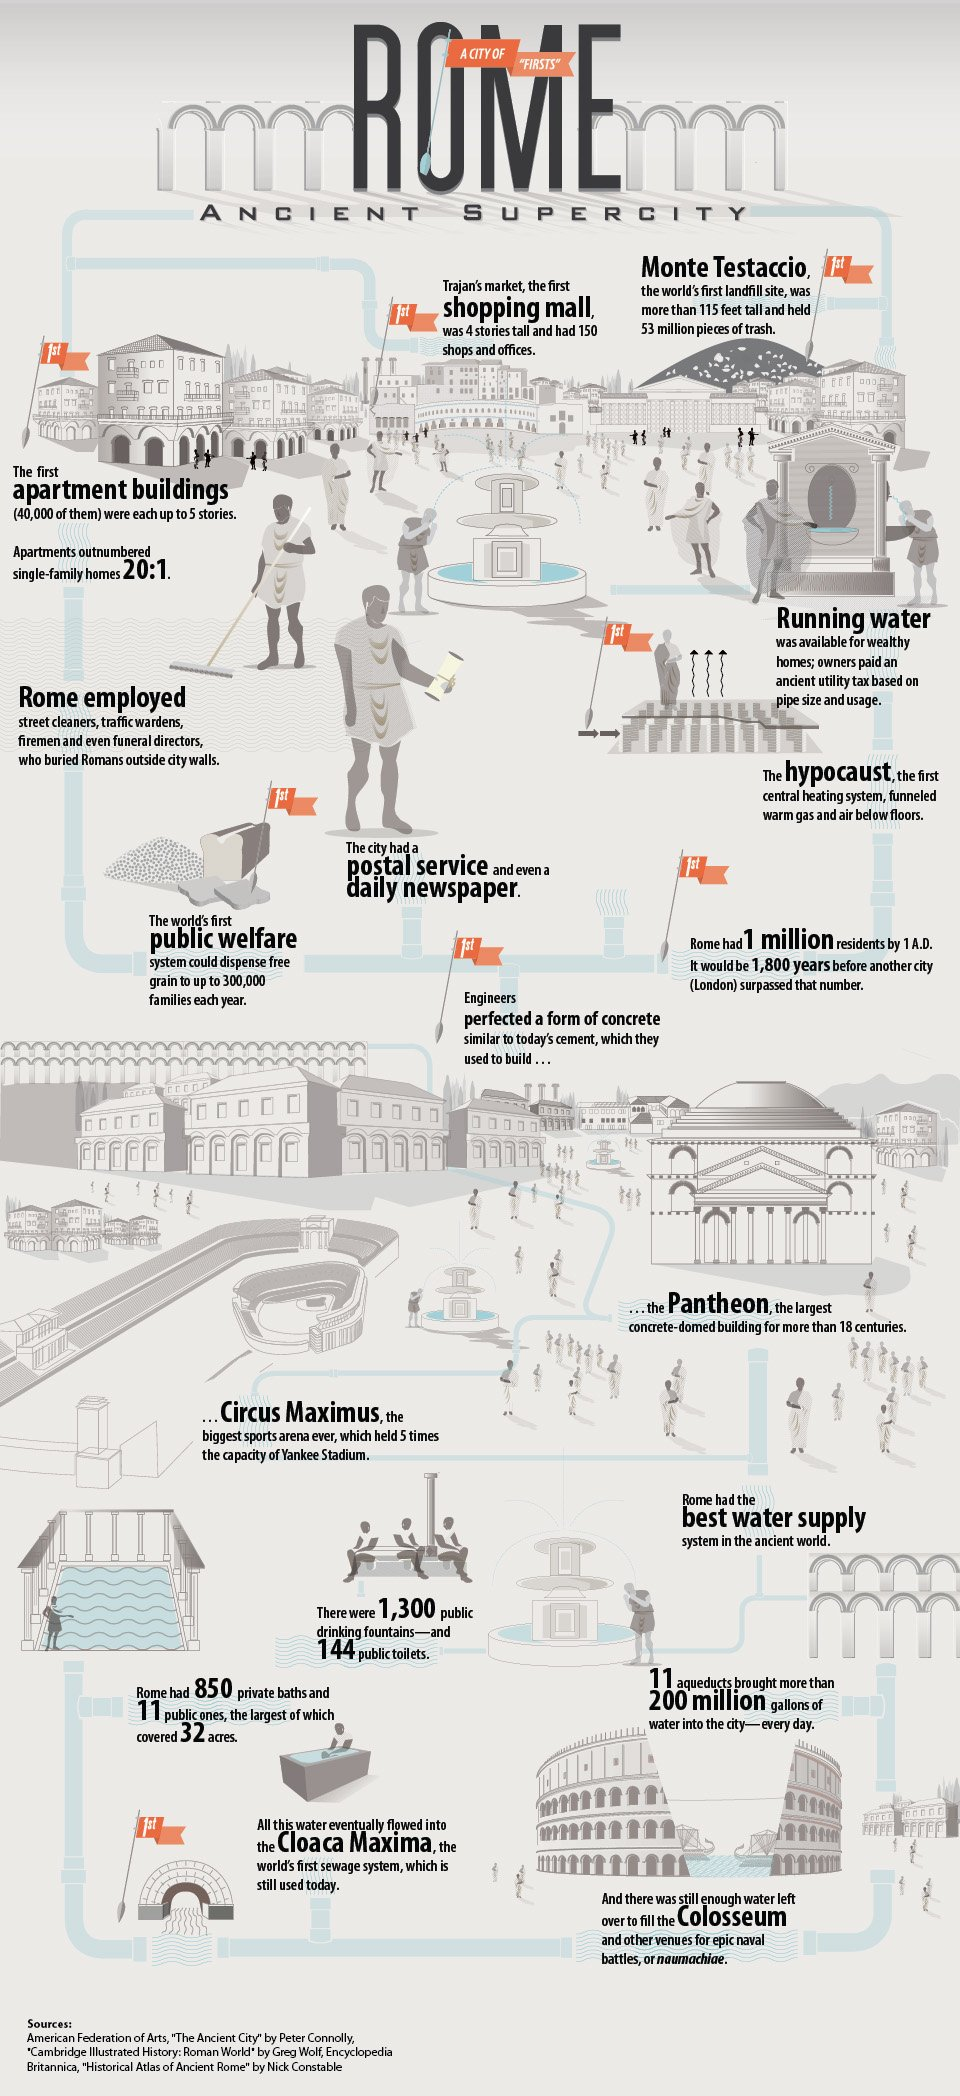 38 Facts About Rome